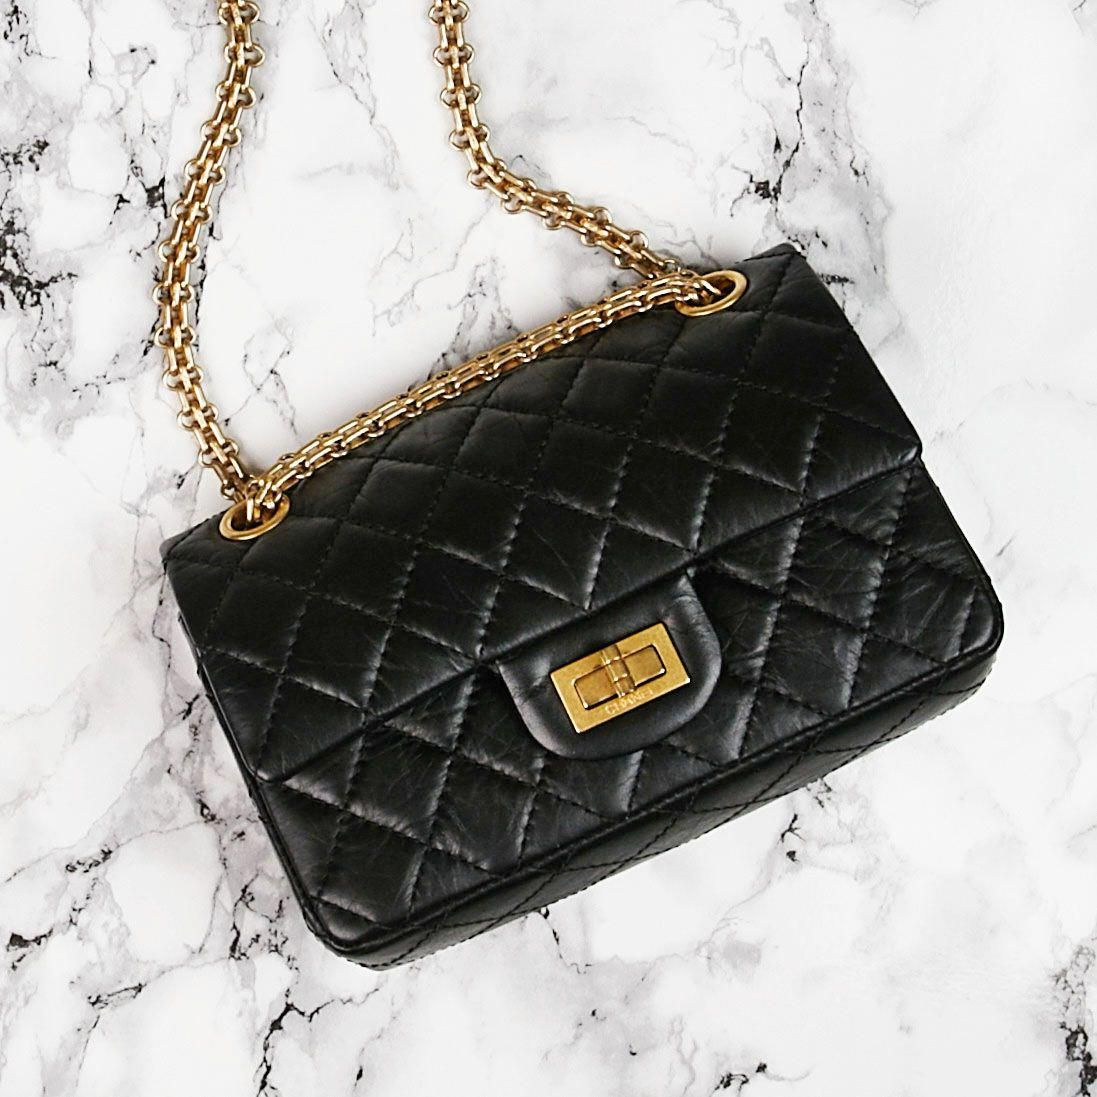 825fb04a23d8 Add a touch of class to any outfit with this small Chanel 2.55 Reissue  Flap! - Yoogi's Closet | #Chanel #Chanelhandbags